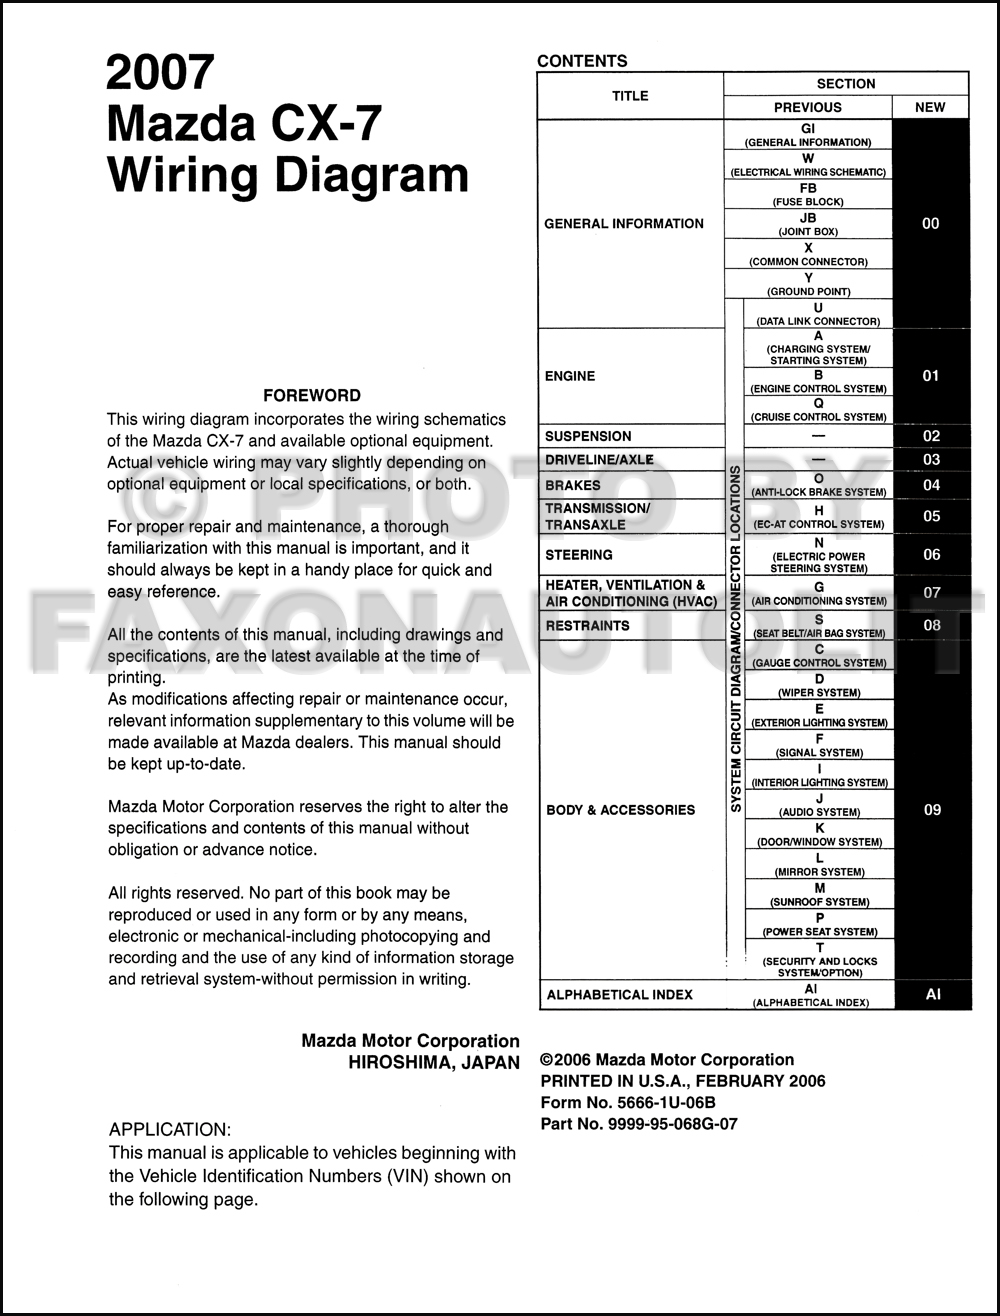 2007 Mazda Wiring Diagram Layout Diagrams Miata Pdf Cx 7 Manual Original Rh Faxonautoliterature Com 3 Radio